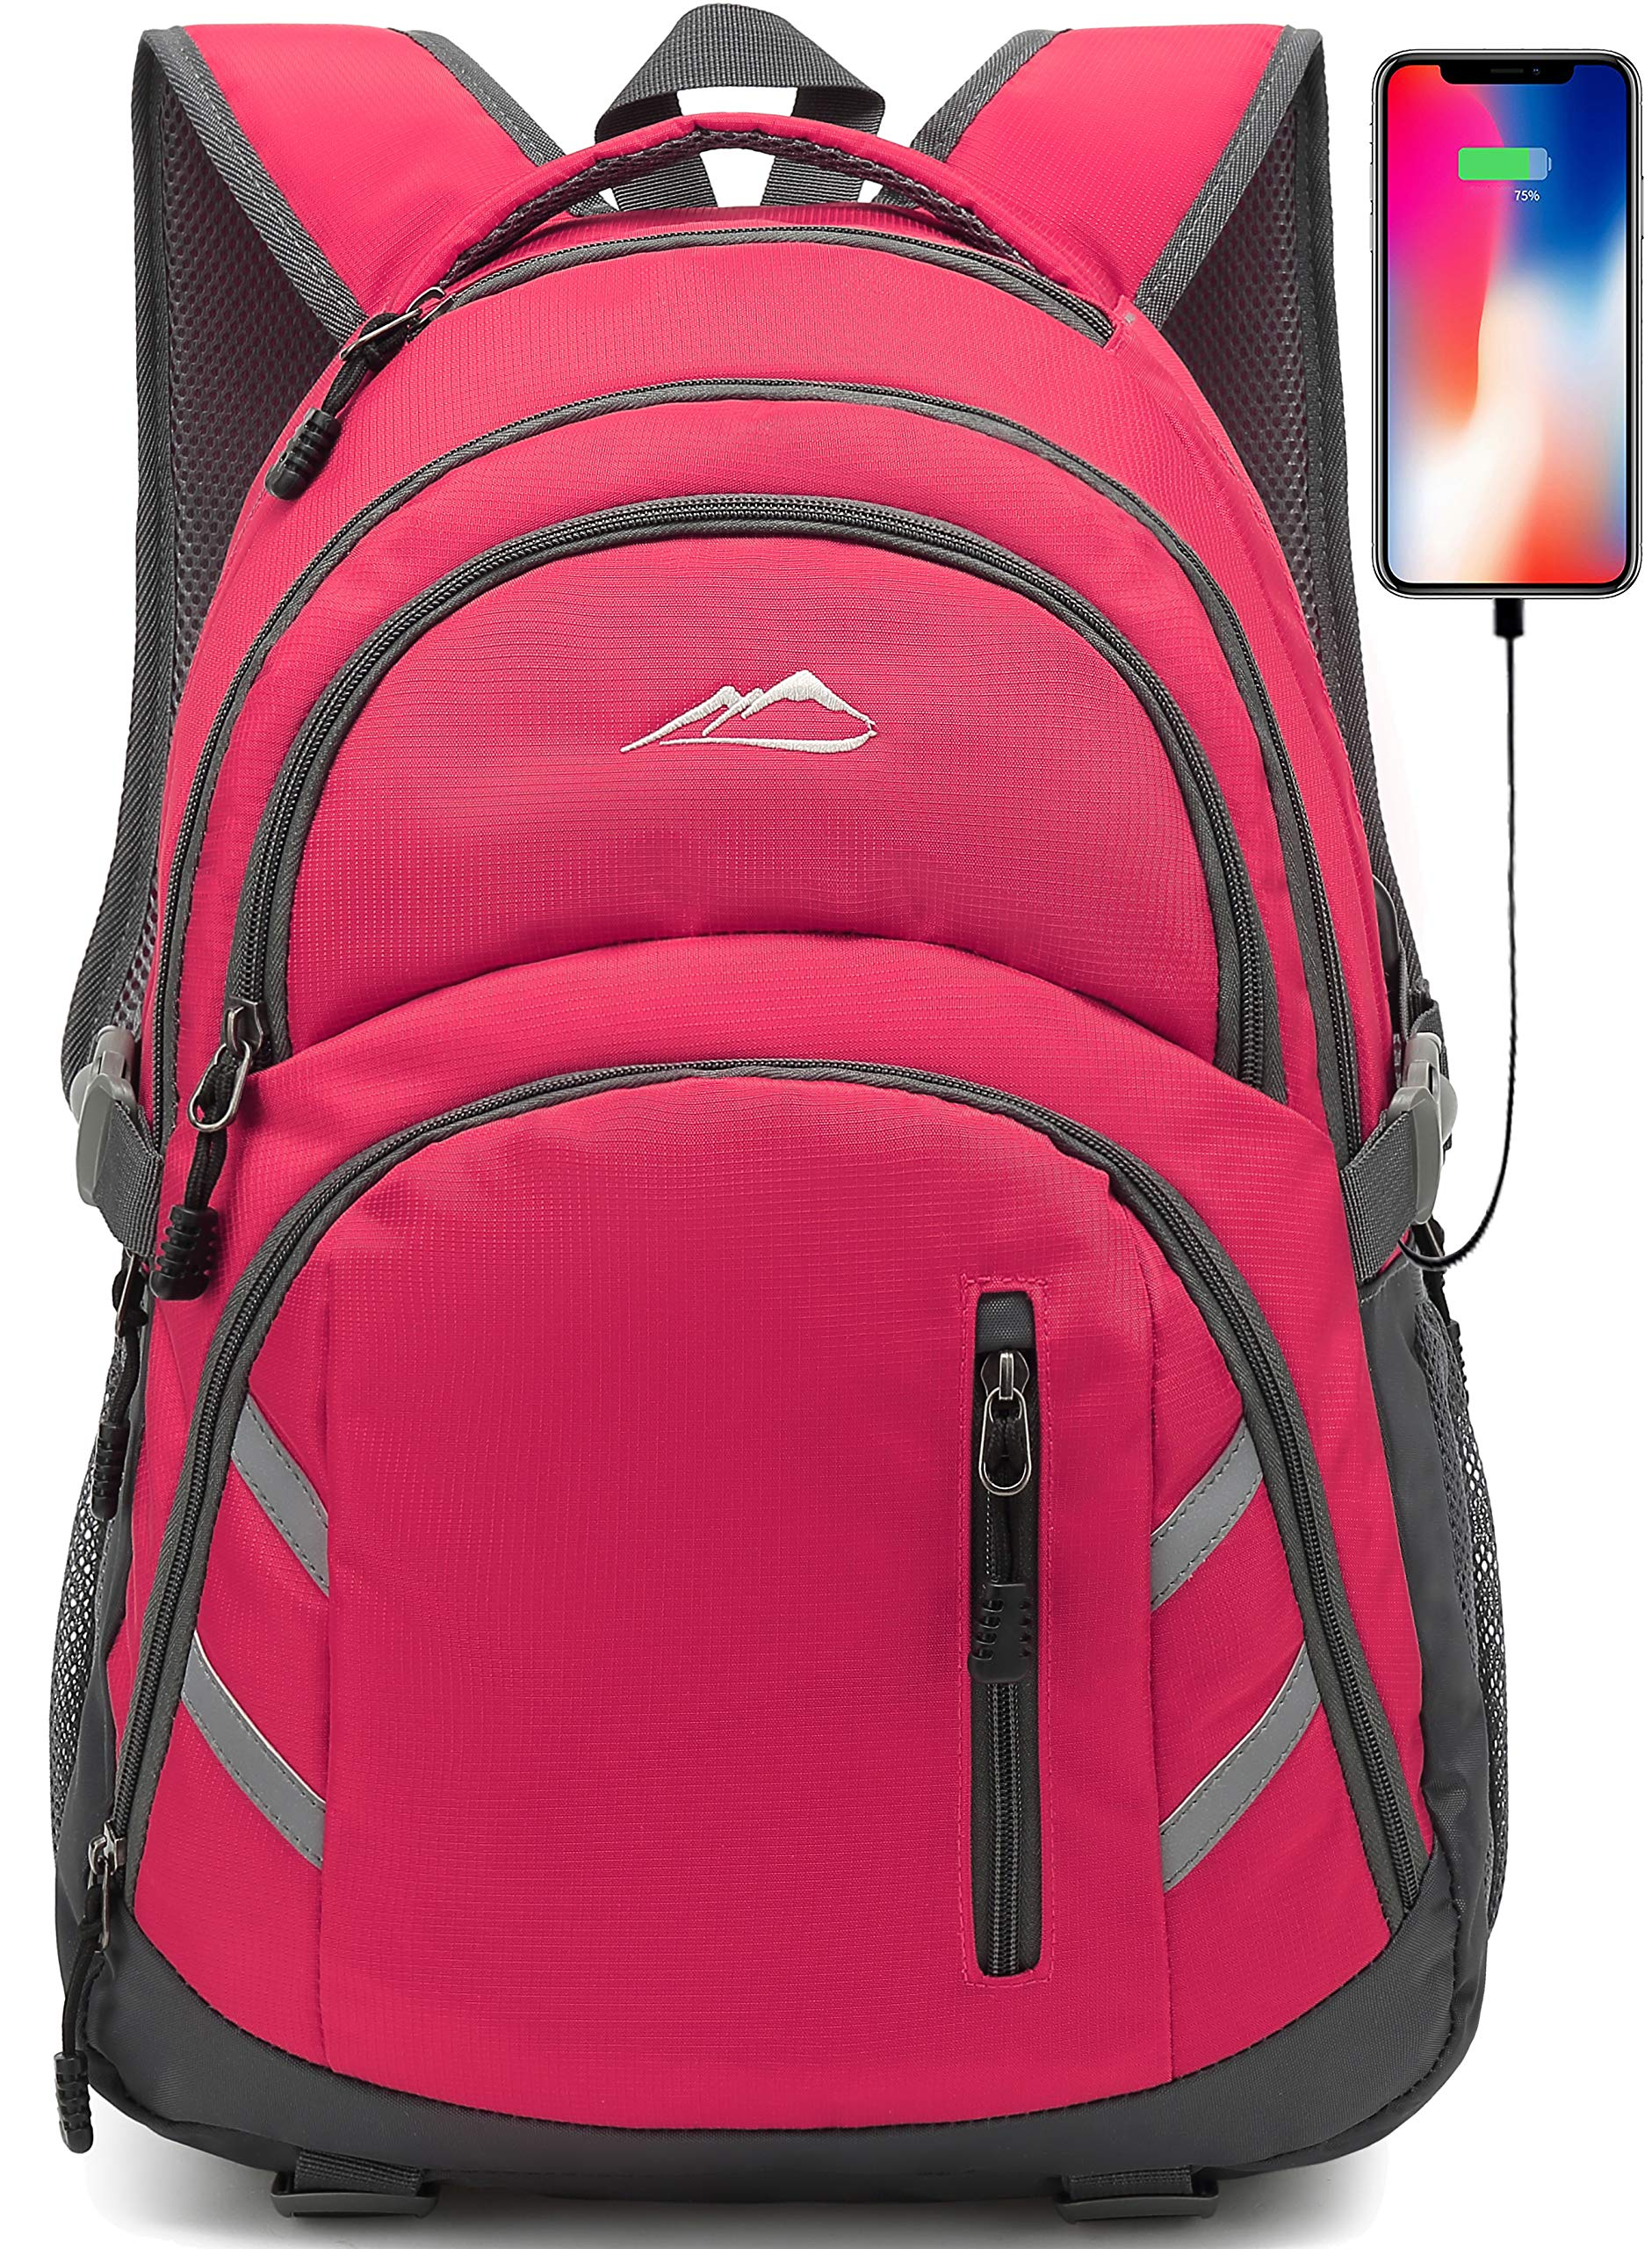 Backpack Bookbag for School College Student Laptop Travel Business with USB Charging Port Laptop Compartment Luggage Straps Anti theft Night Light Reflective (Pink) by ProEtrade